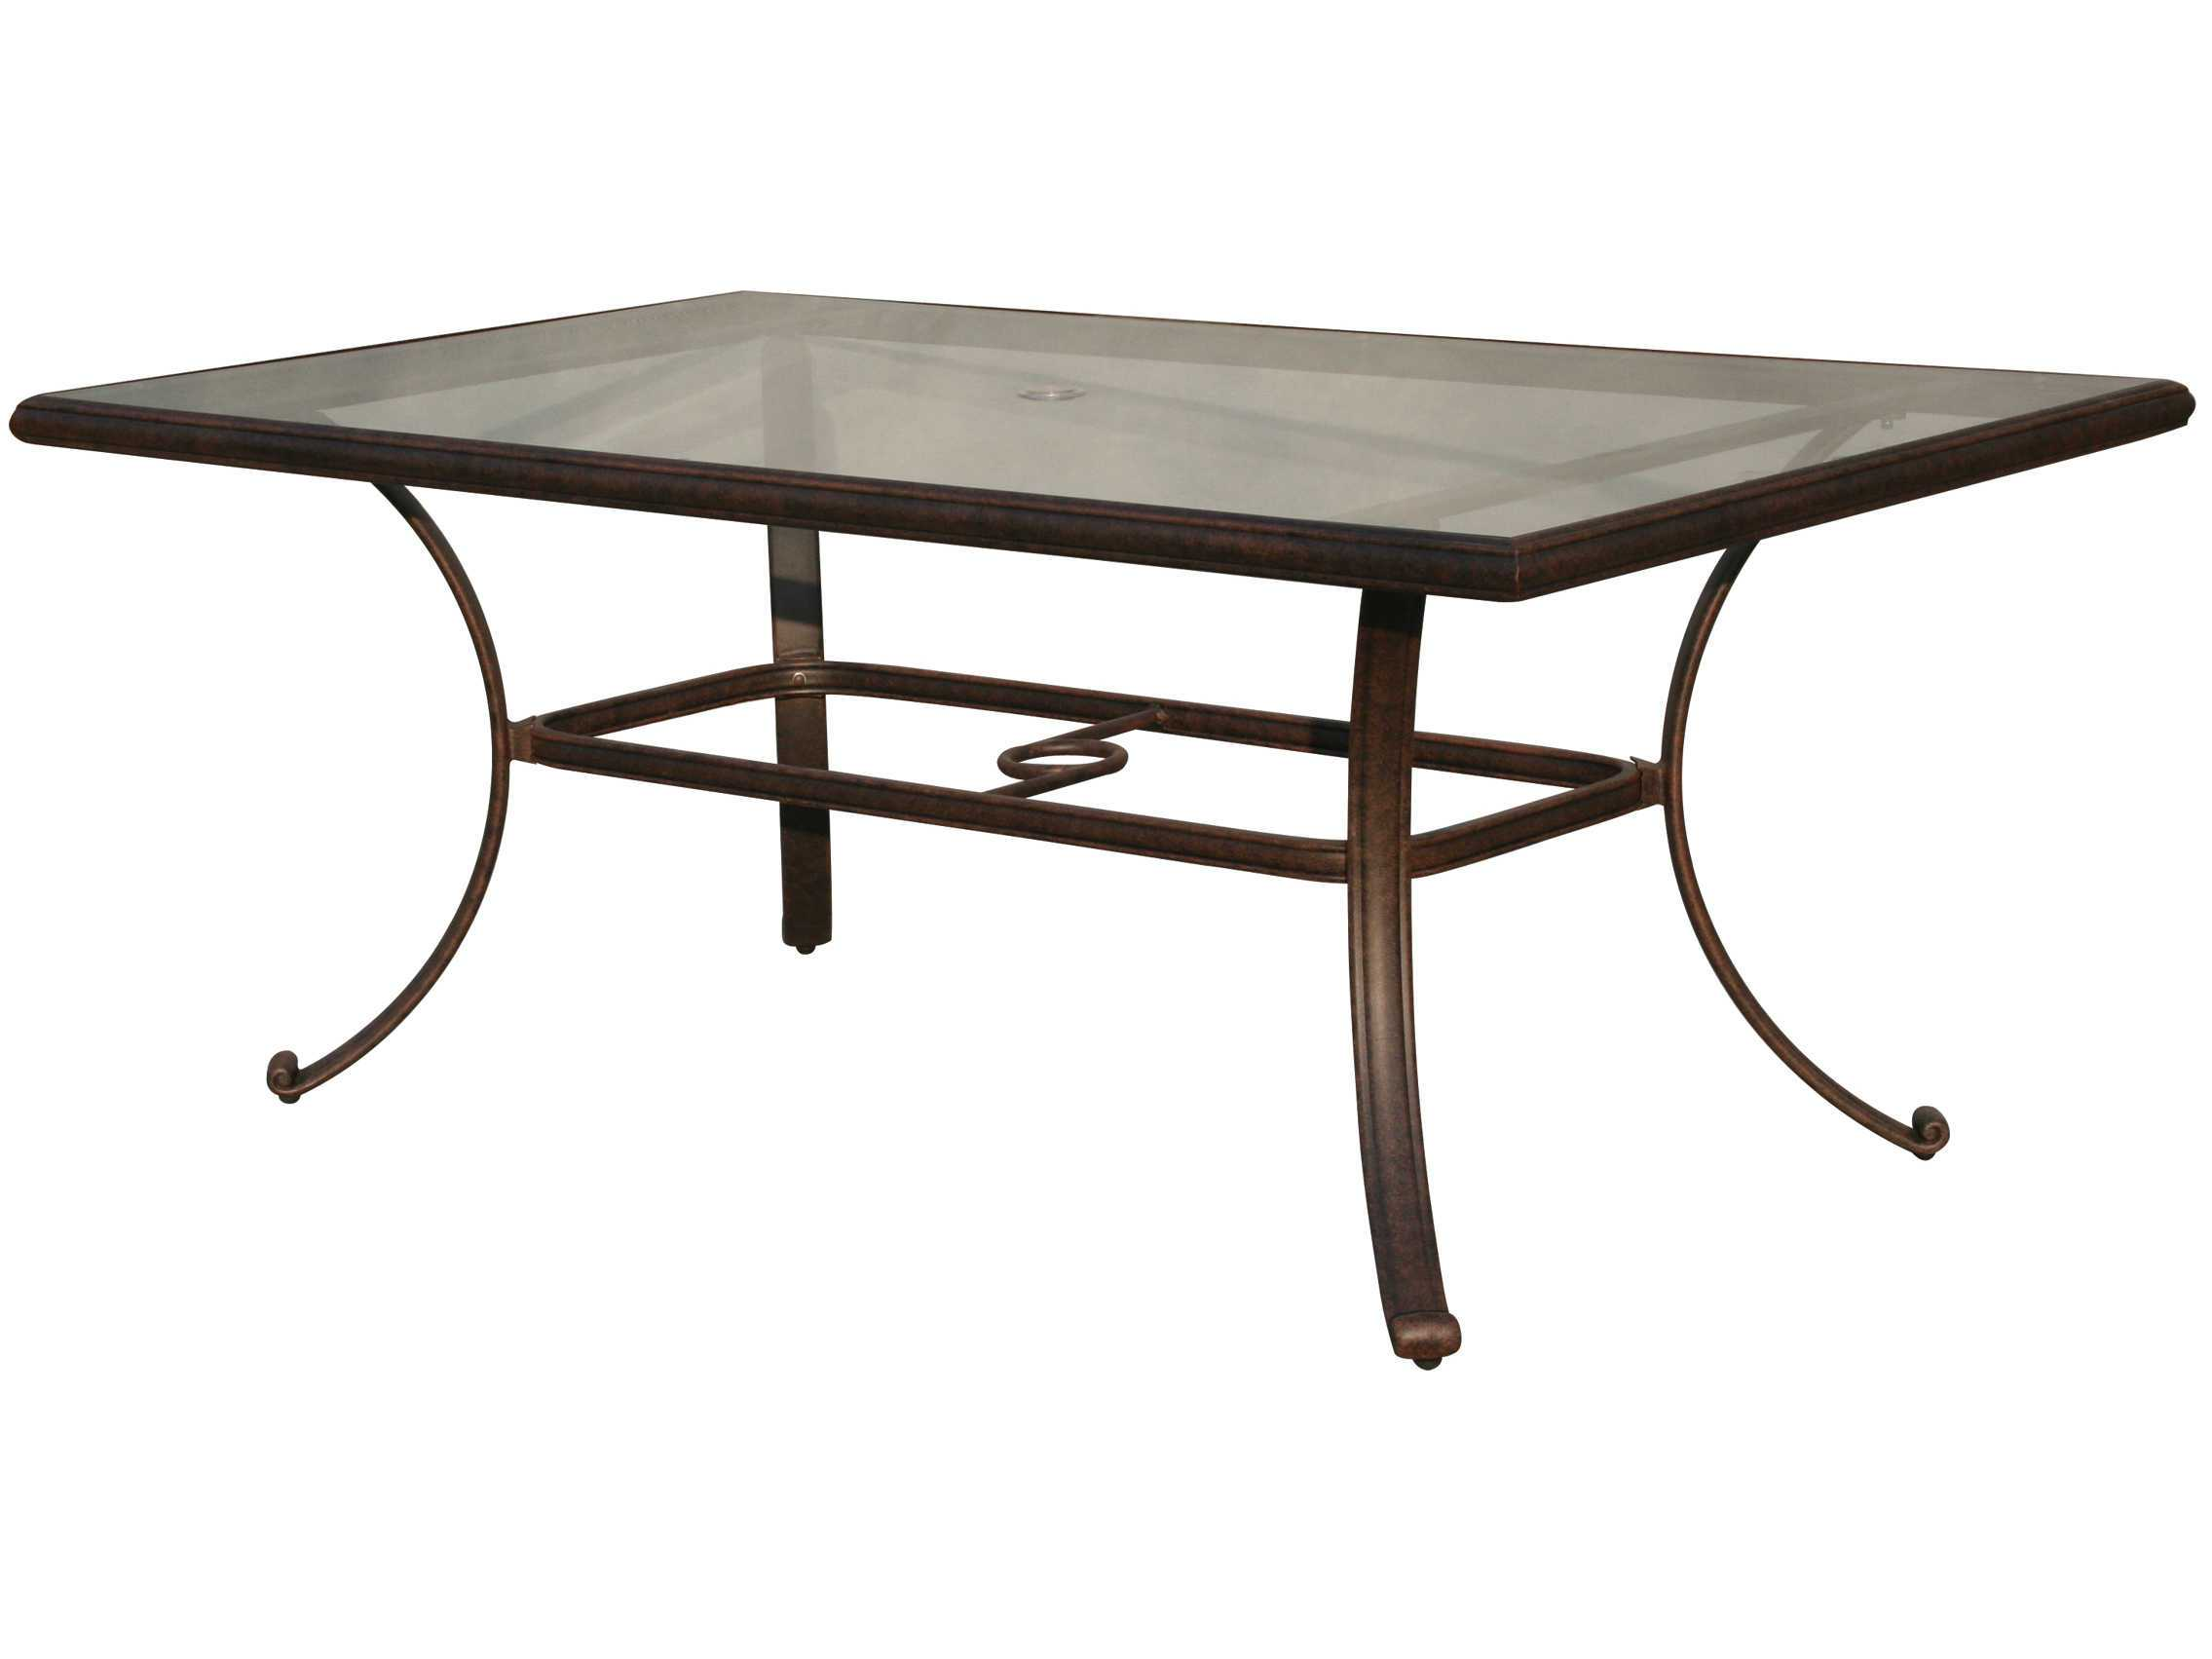 Porch Table Darlee Outdoor Living Glass Top Cast Aluminum Antique